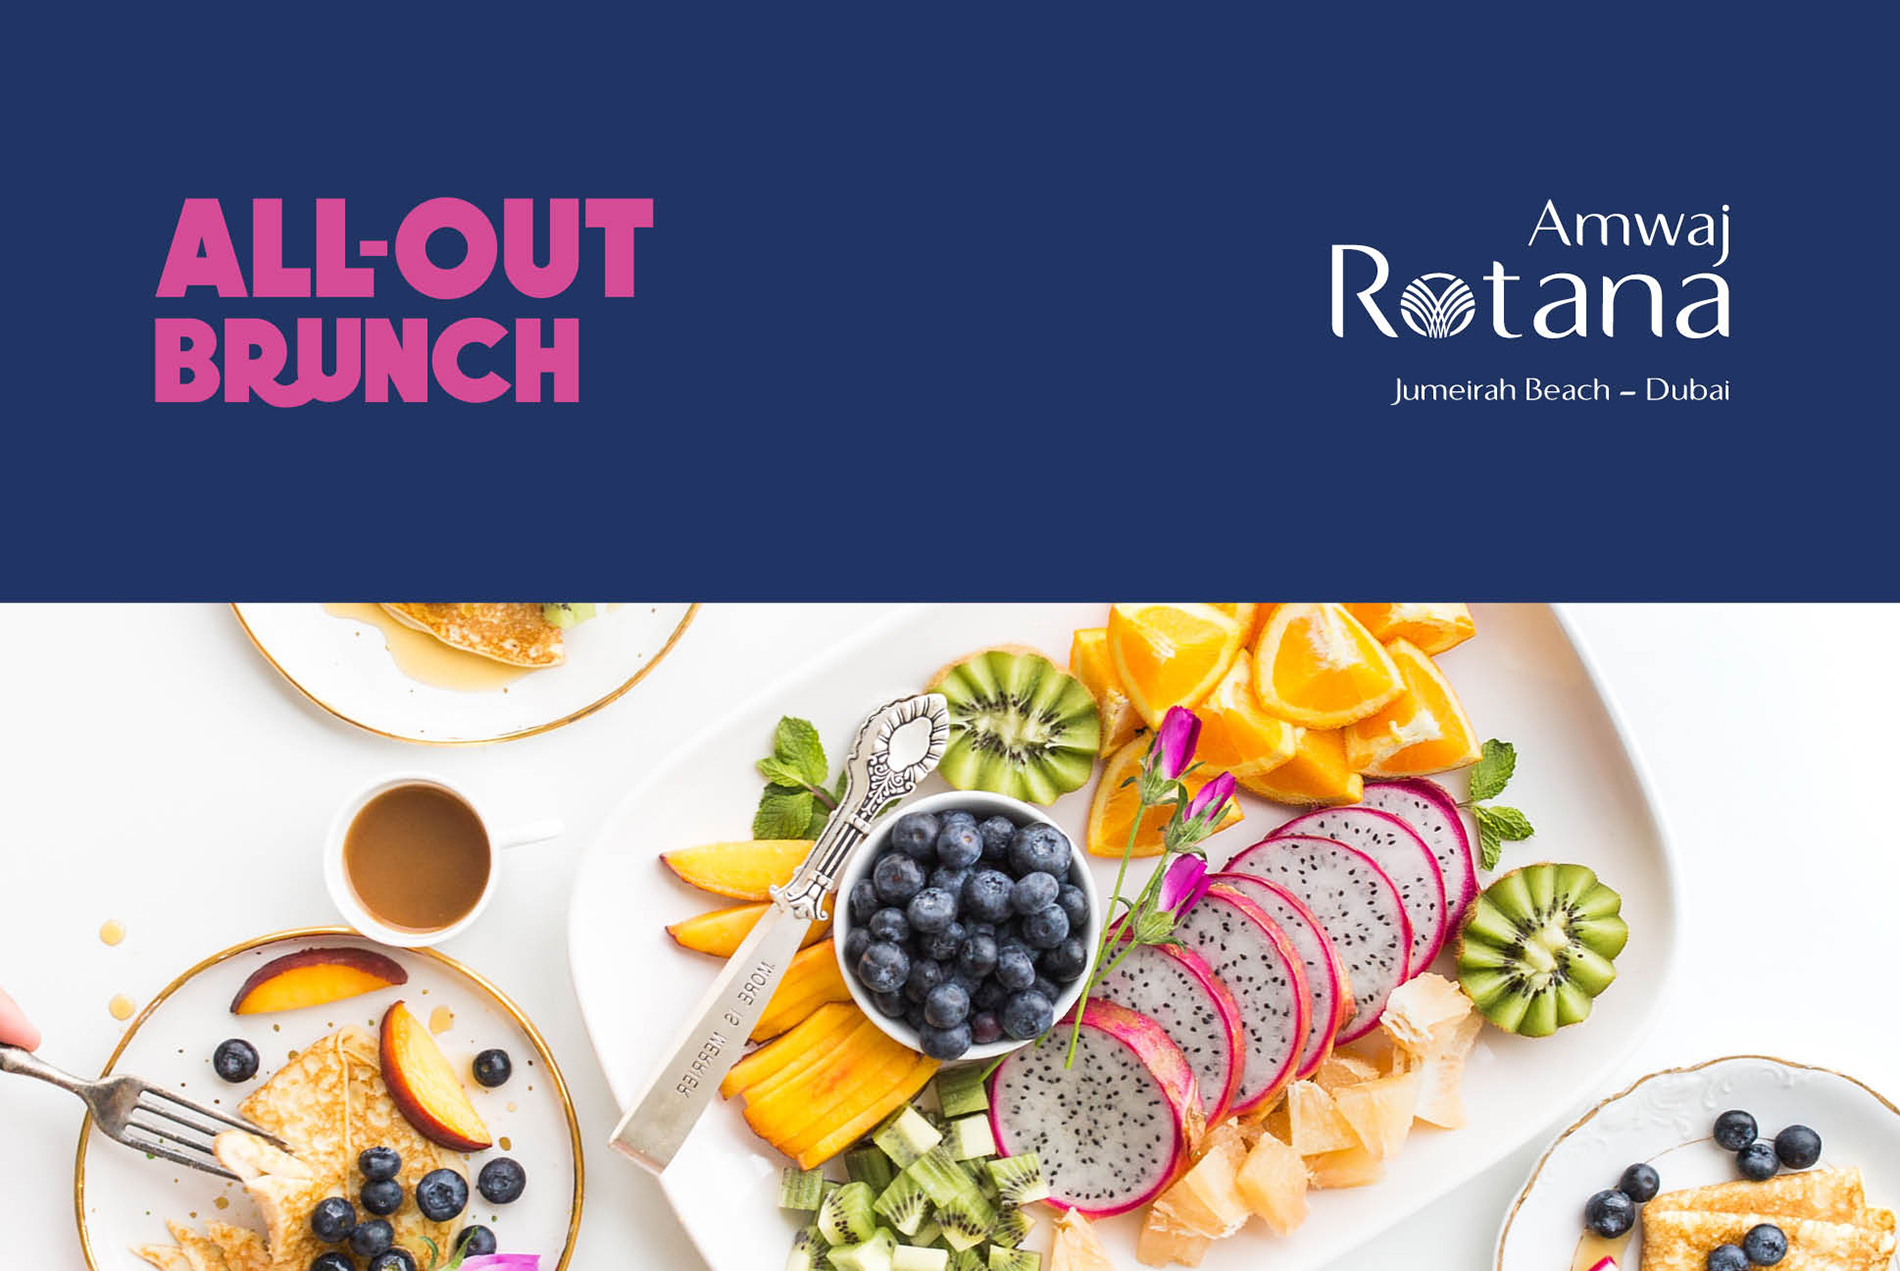 All-out Brunch Branding | All-out Brunch Poster | Amwaj Rotana | Independent Marketing Campaign & Advertising Services | IM London